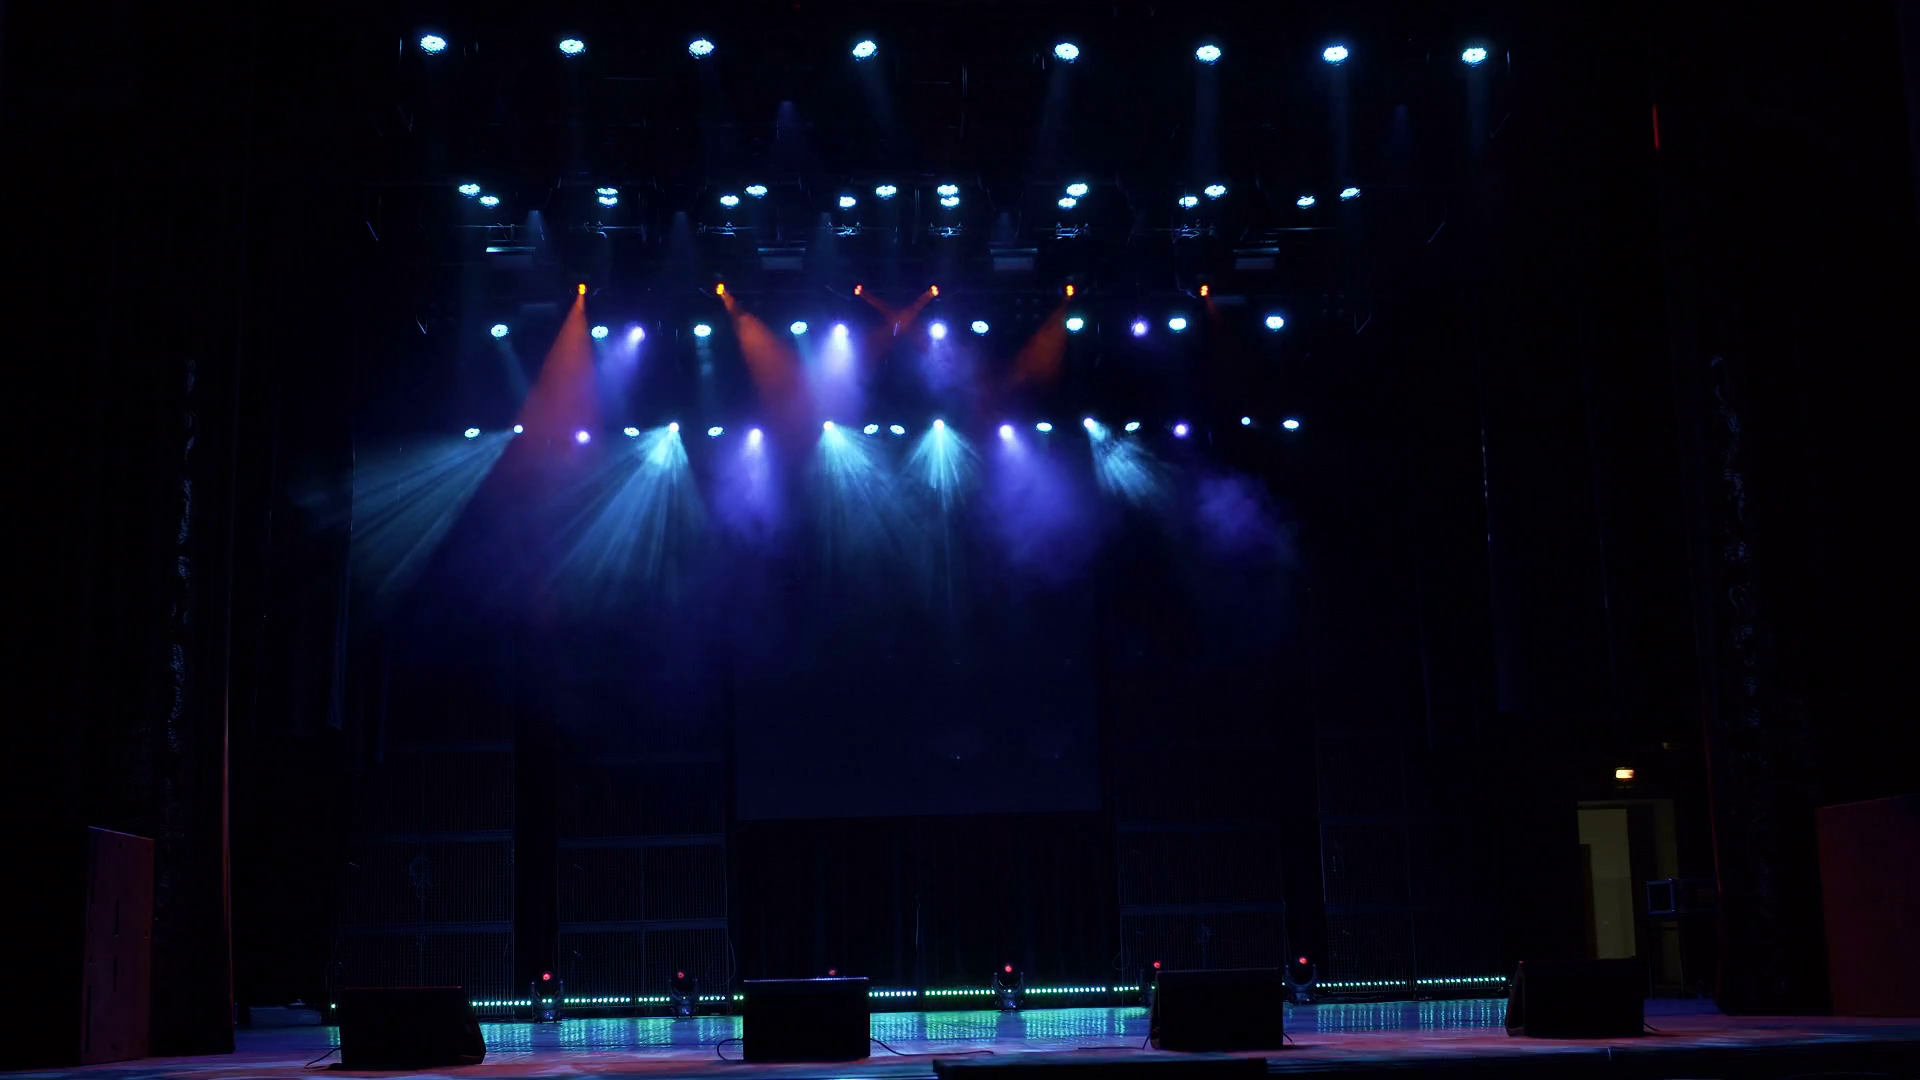 Concert Stage Png (108+ images in Collection) Page 1.